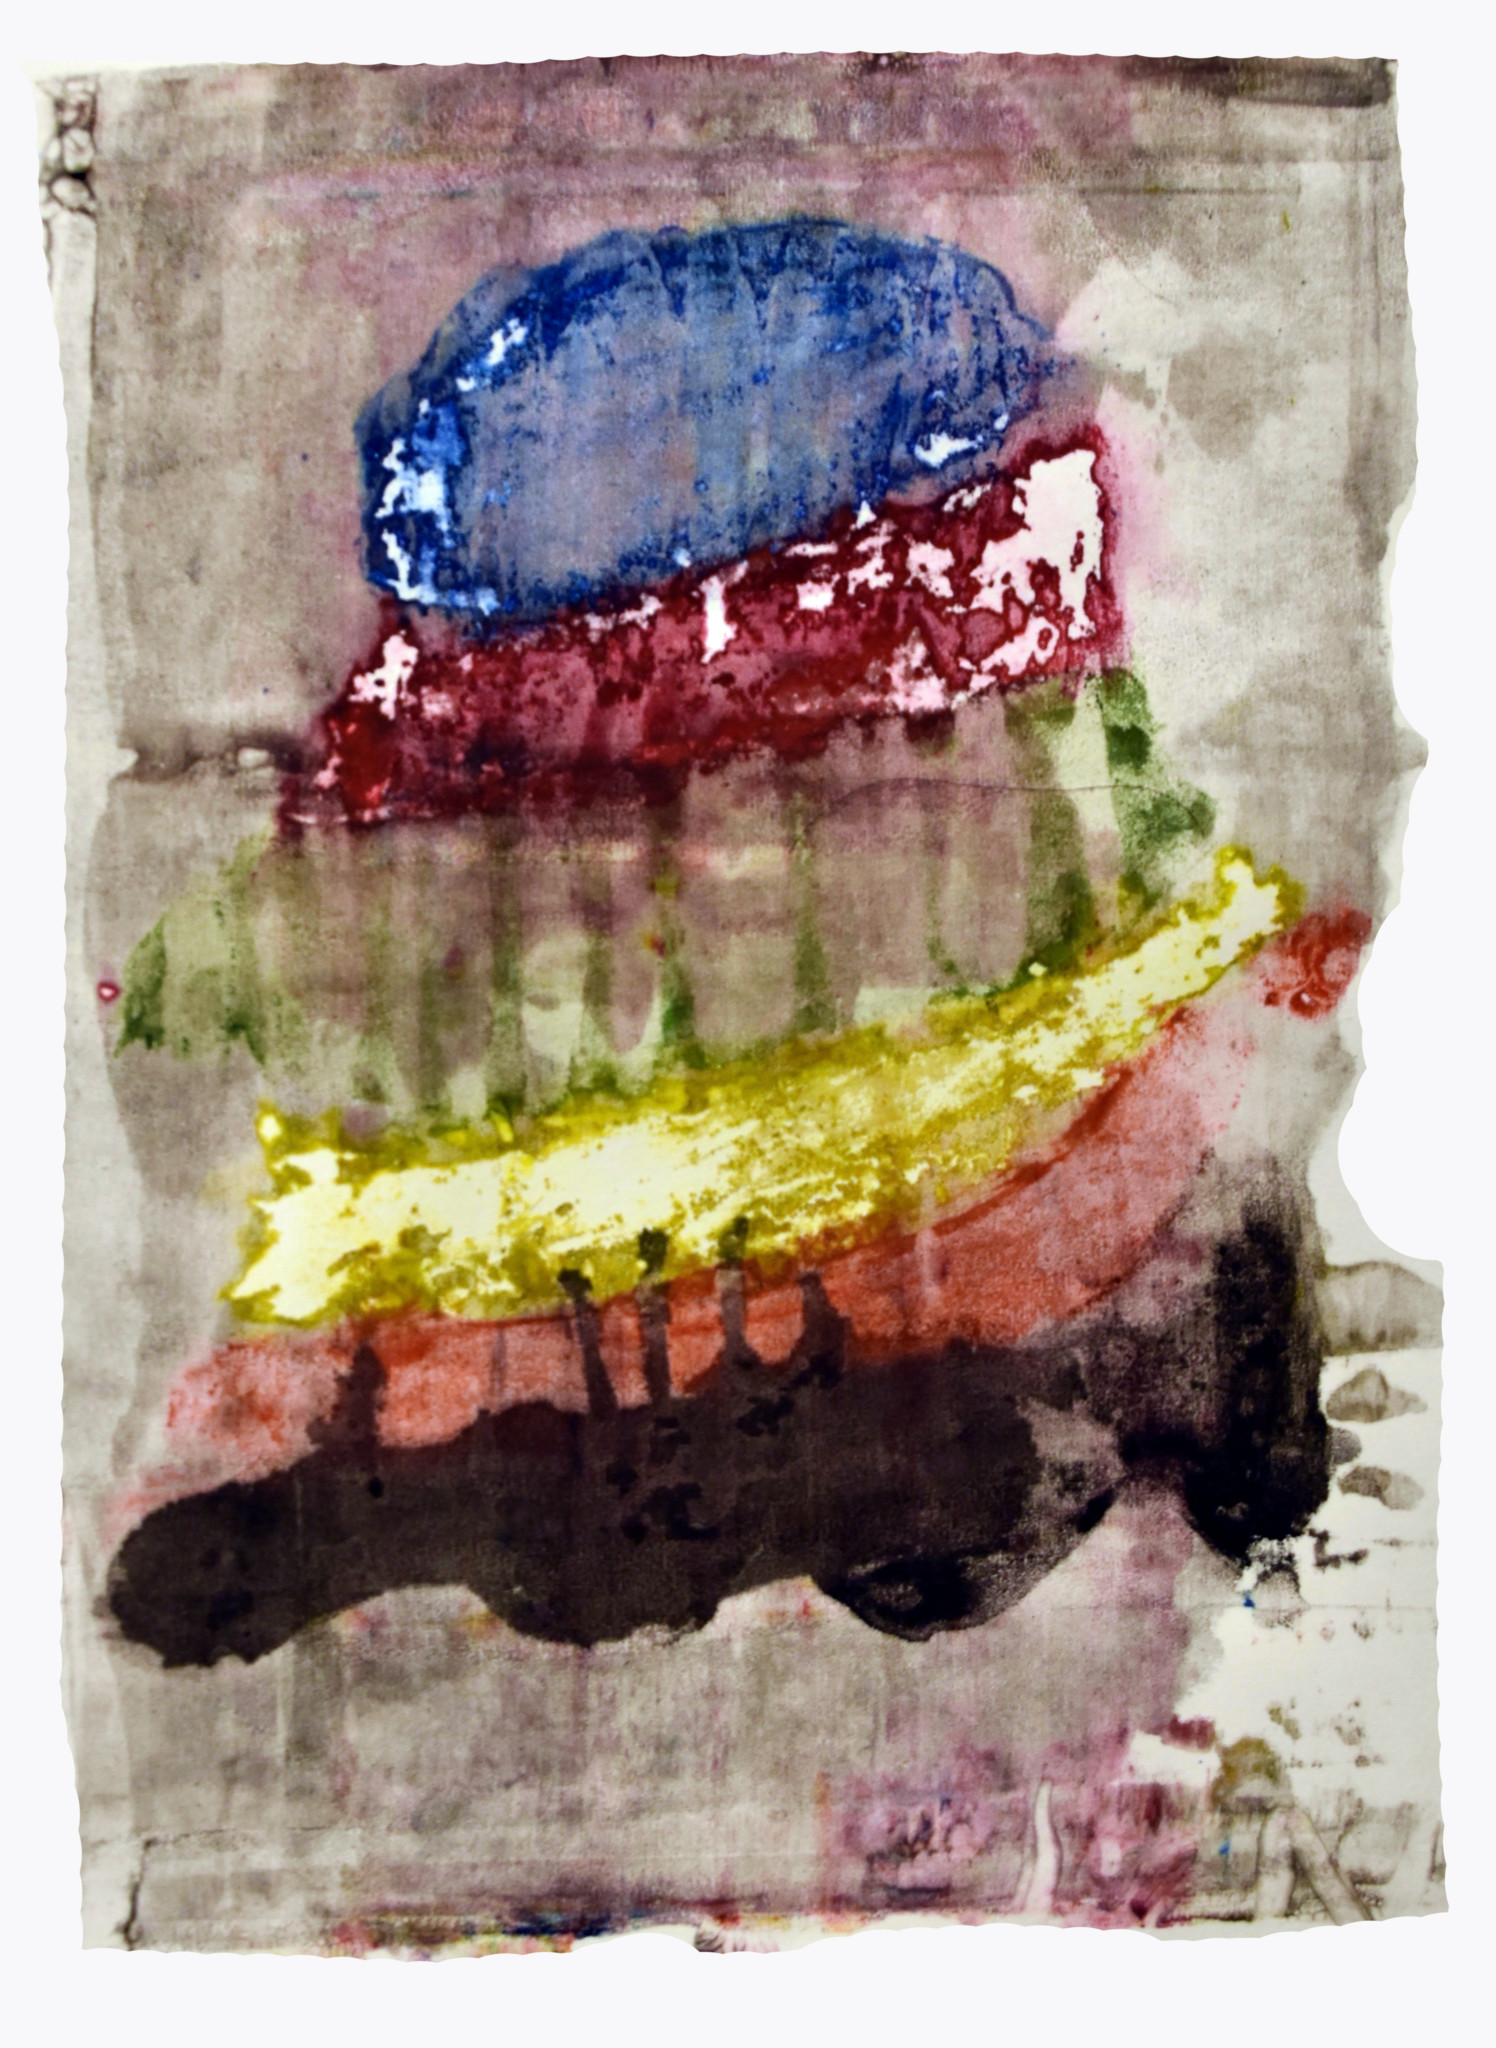 "Watercolor & Ink Print on Paper, december 2016 9 X 12"" Studio Programs at SkyART Studios Dominique, 19 years old Graphic Design major at Illinois Institute of Art Chicago Coming to SkyART for 14 years"